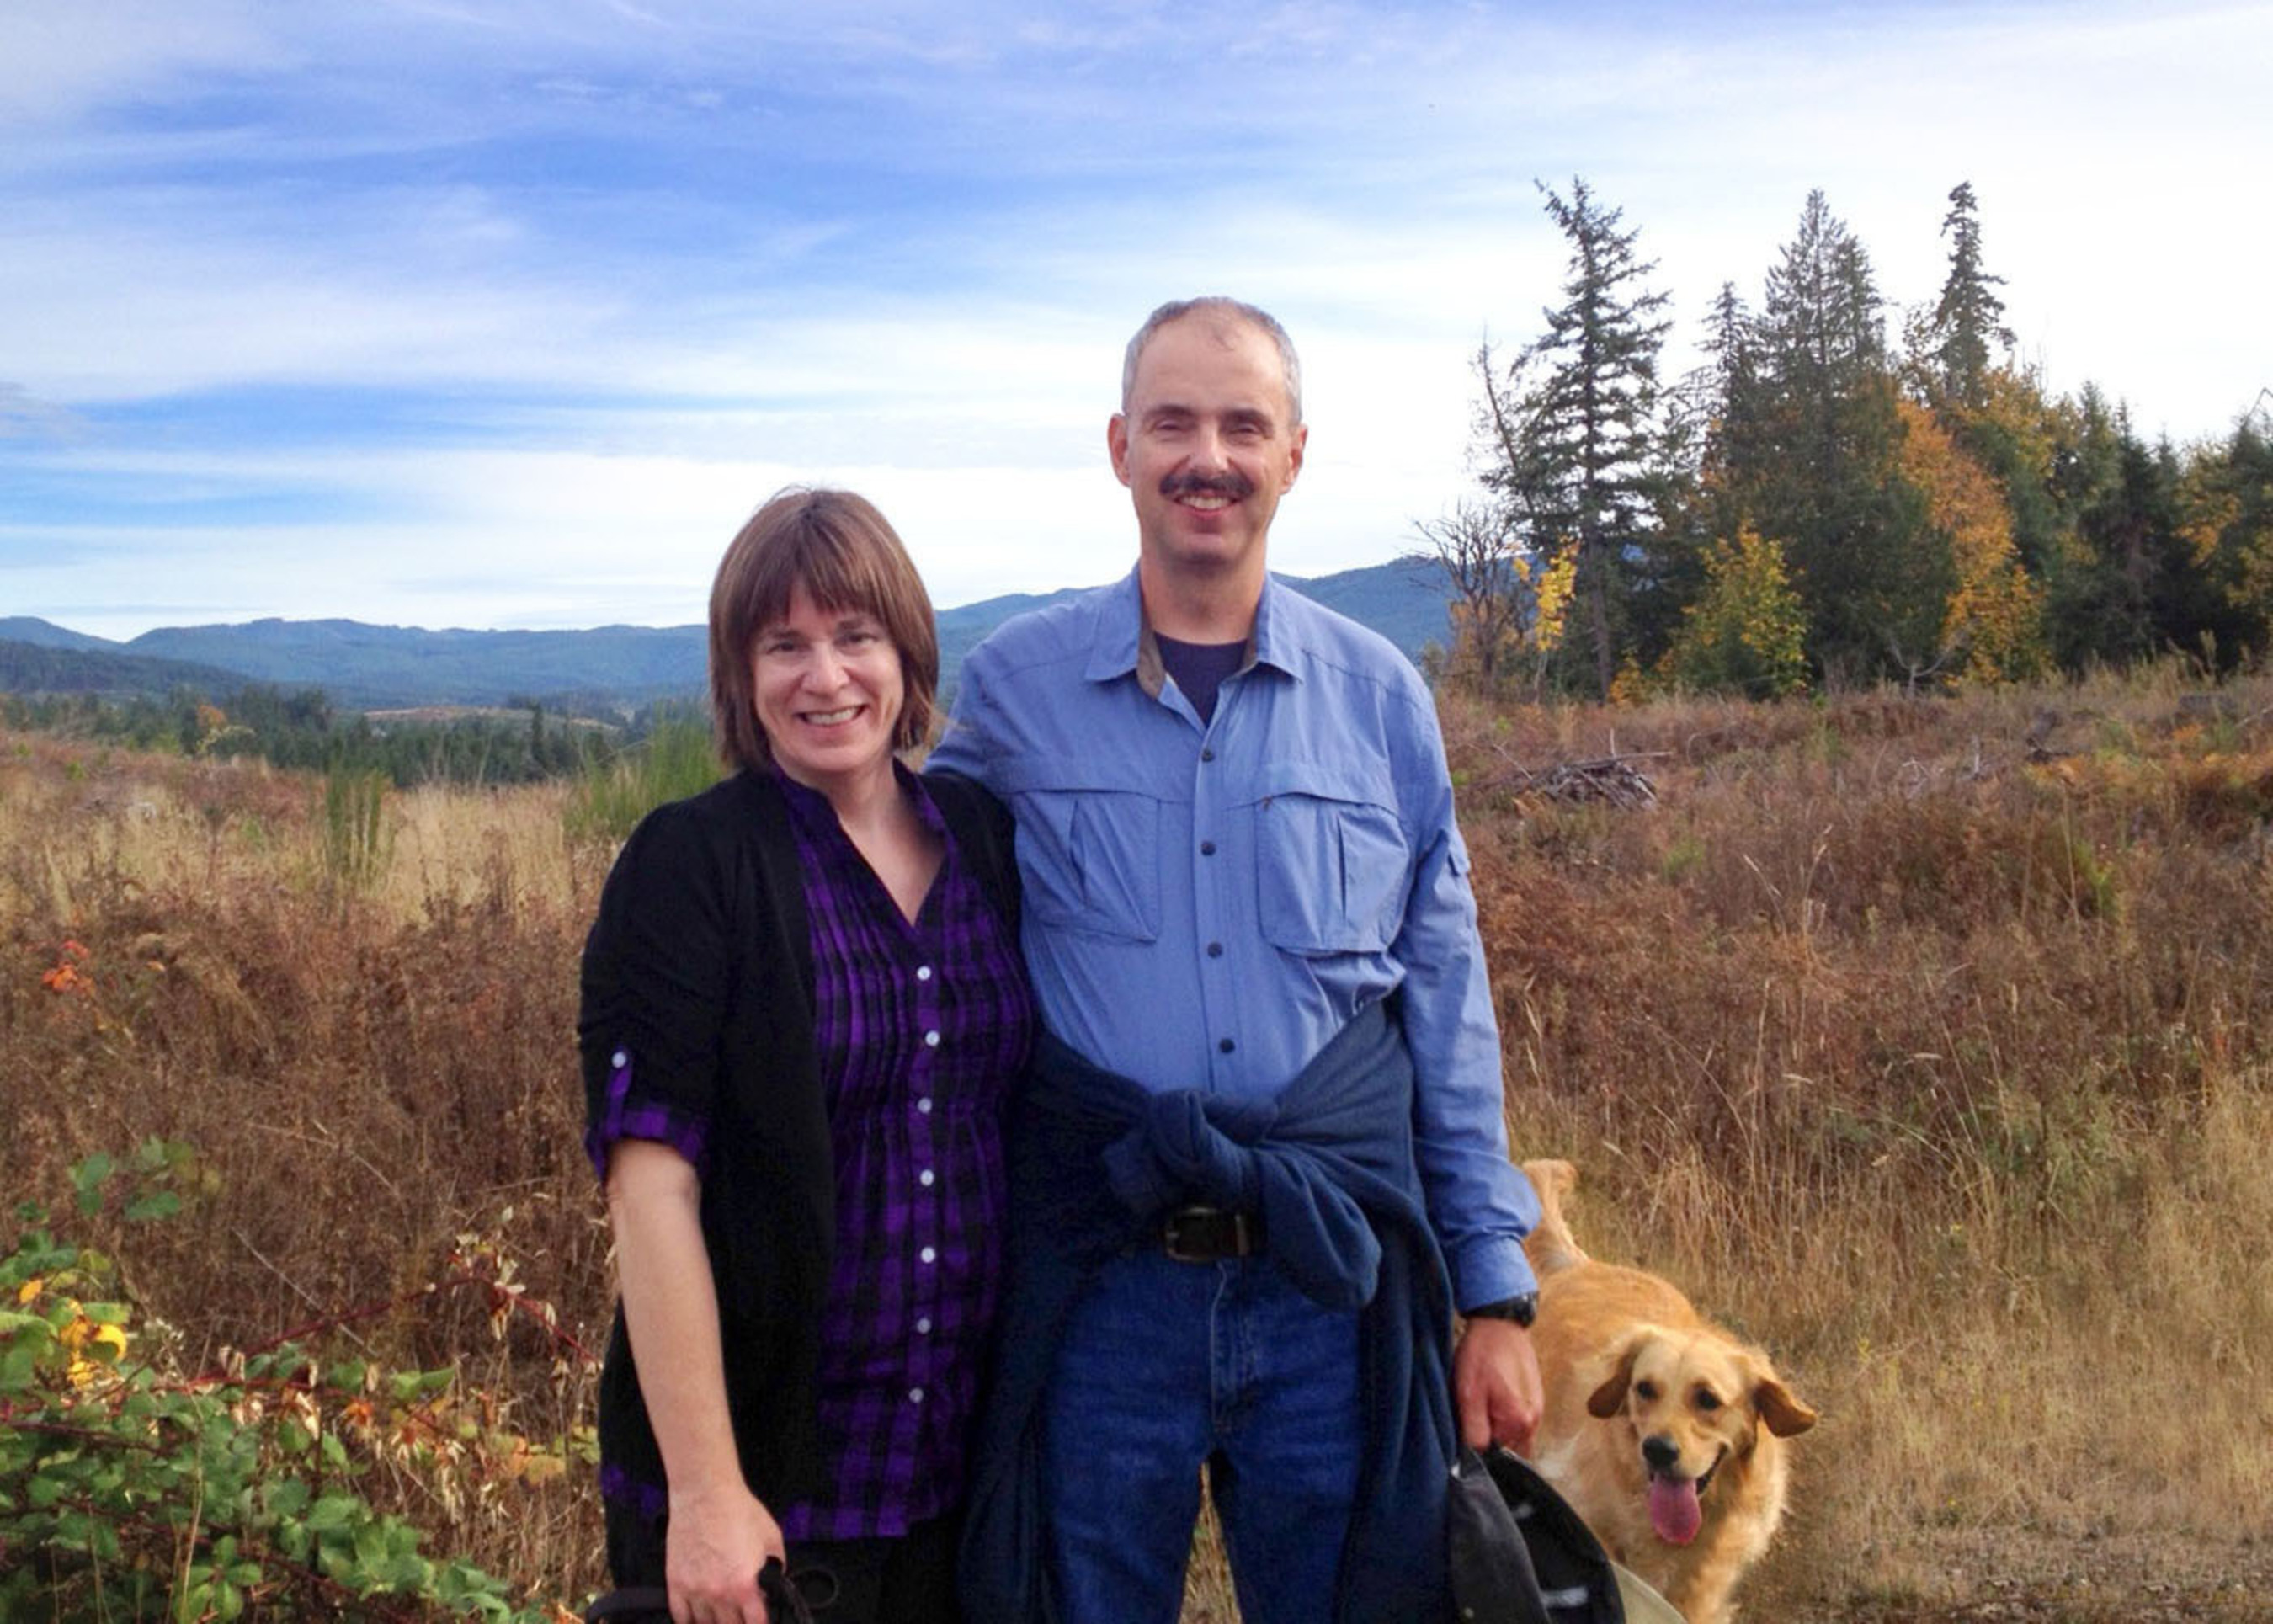 SynCardia Total Artificial Heart recipient Chris Marshall and his wife Kathy enjoy a hike in the Seattle-area one month after he received his donor heart transplant at University of Washington Medical Center.  (PRNewsFoto/SynCardia Systems, Inc.)